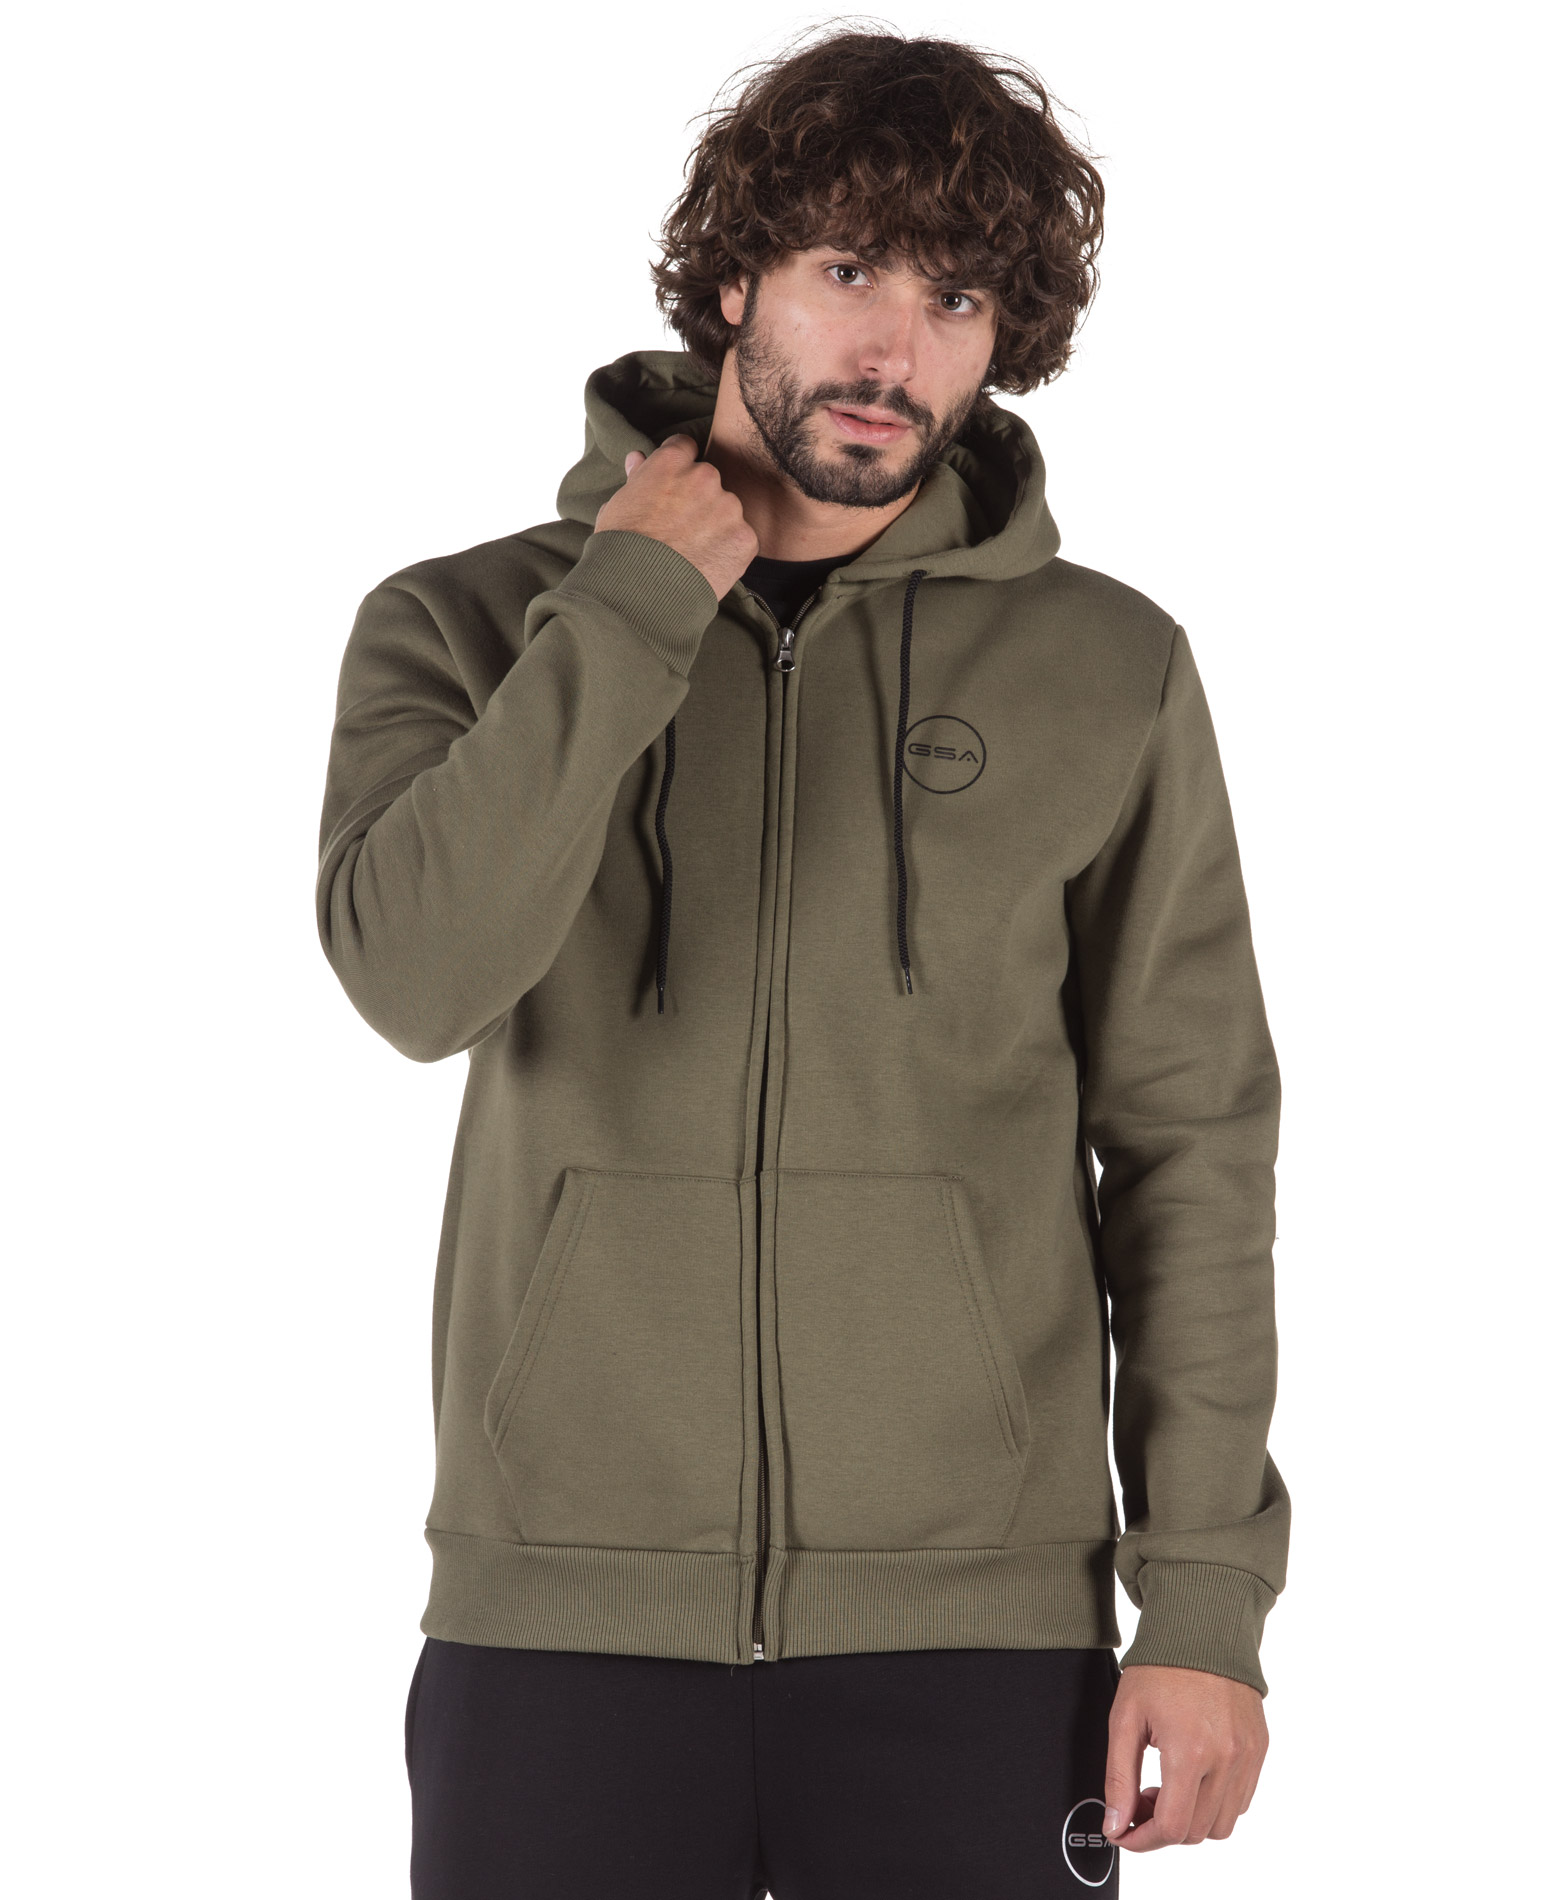 GSA SUPERCOTTON ZIPPER HOODIE 17-17026-07 CHAKI-ARMY Χακί